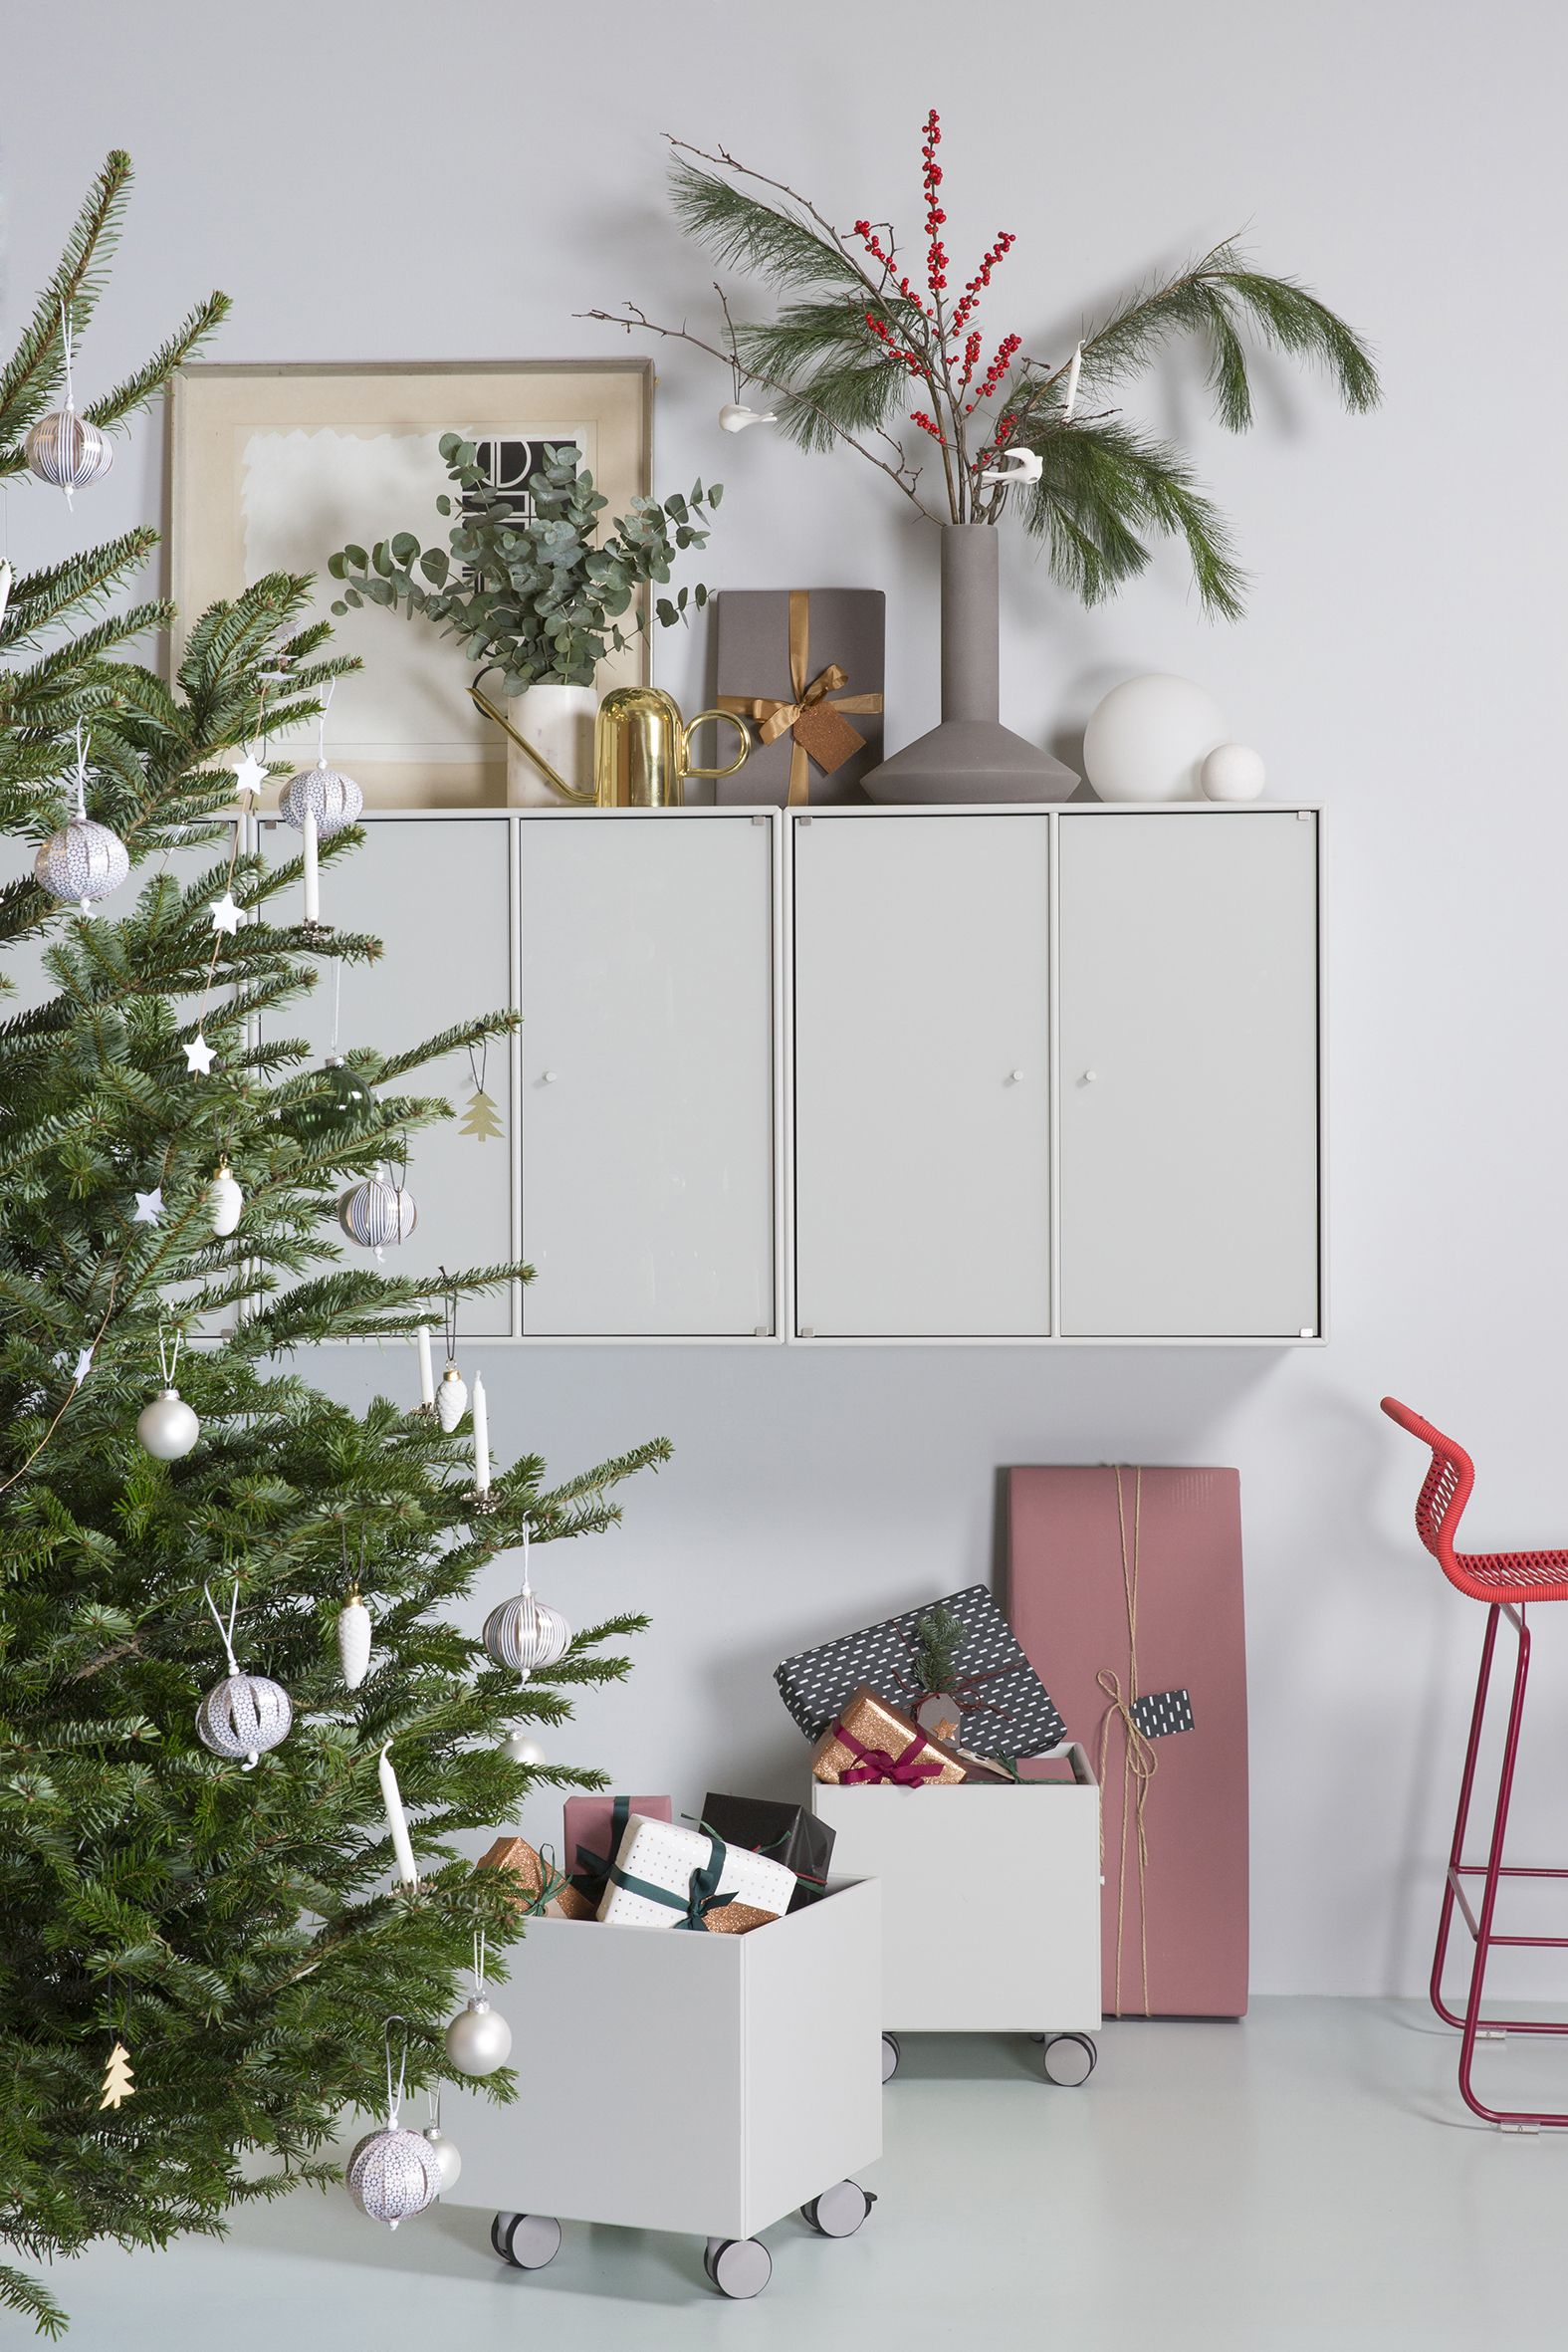 Store Your Presents In A Decorative Way Montana Furniture - Dining room storage cabinets